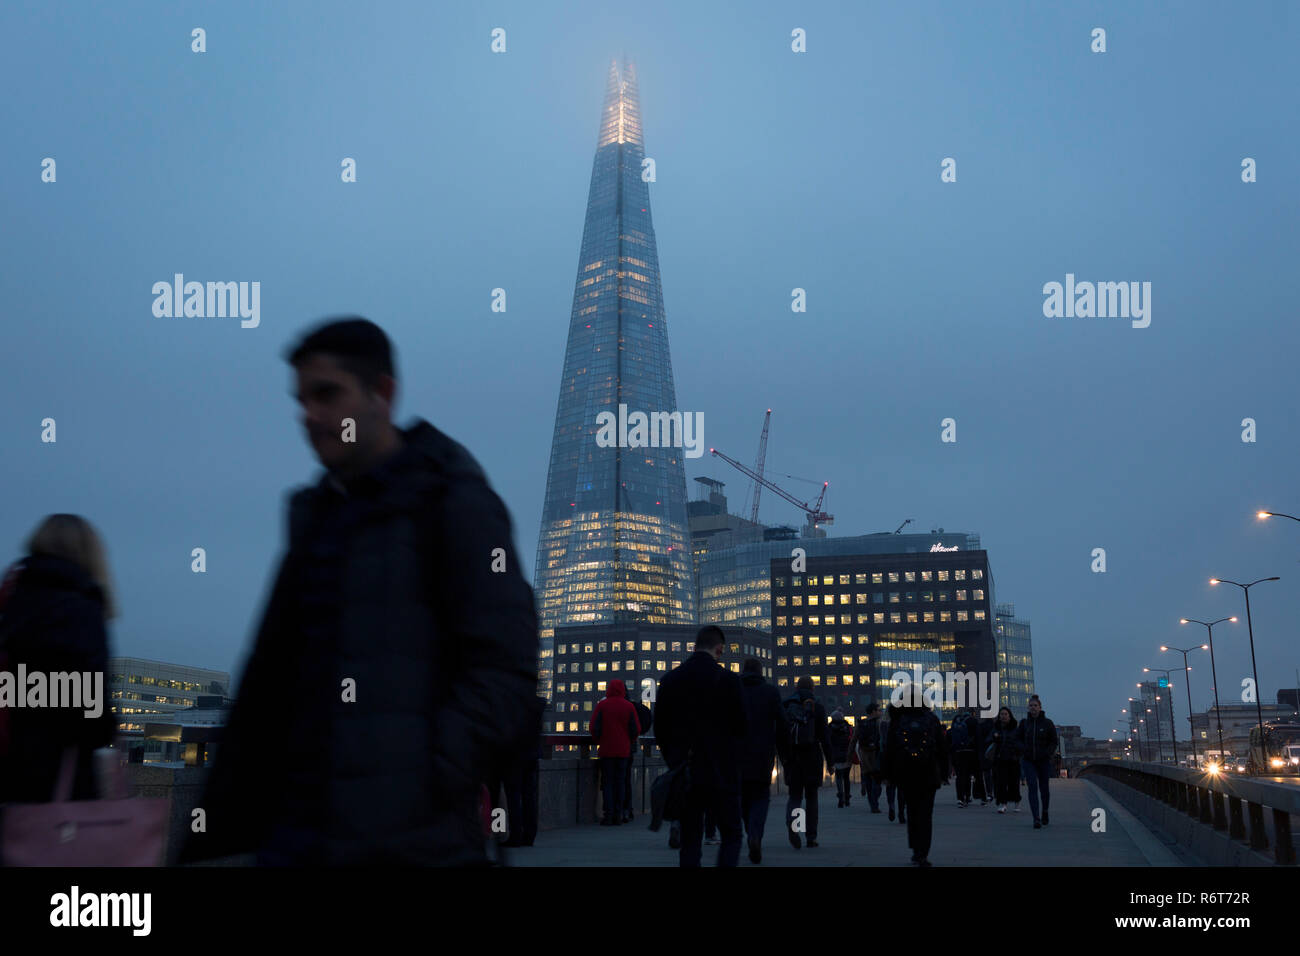 Commuters walk southwards over London Bridge towards the Shard skyscraper on a dark winter's afternoon, on 23rd November 2018, in London, England. - Stock Image